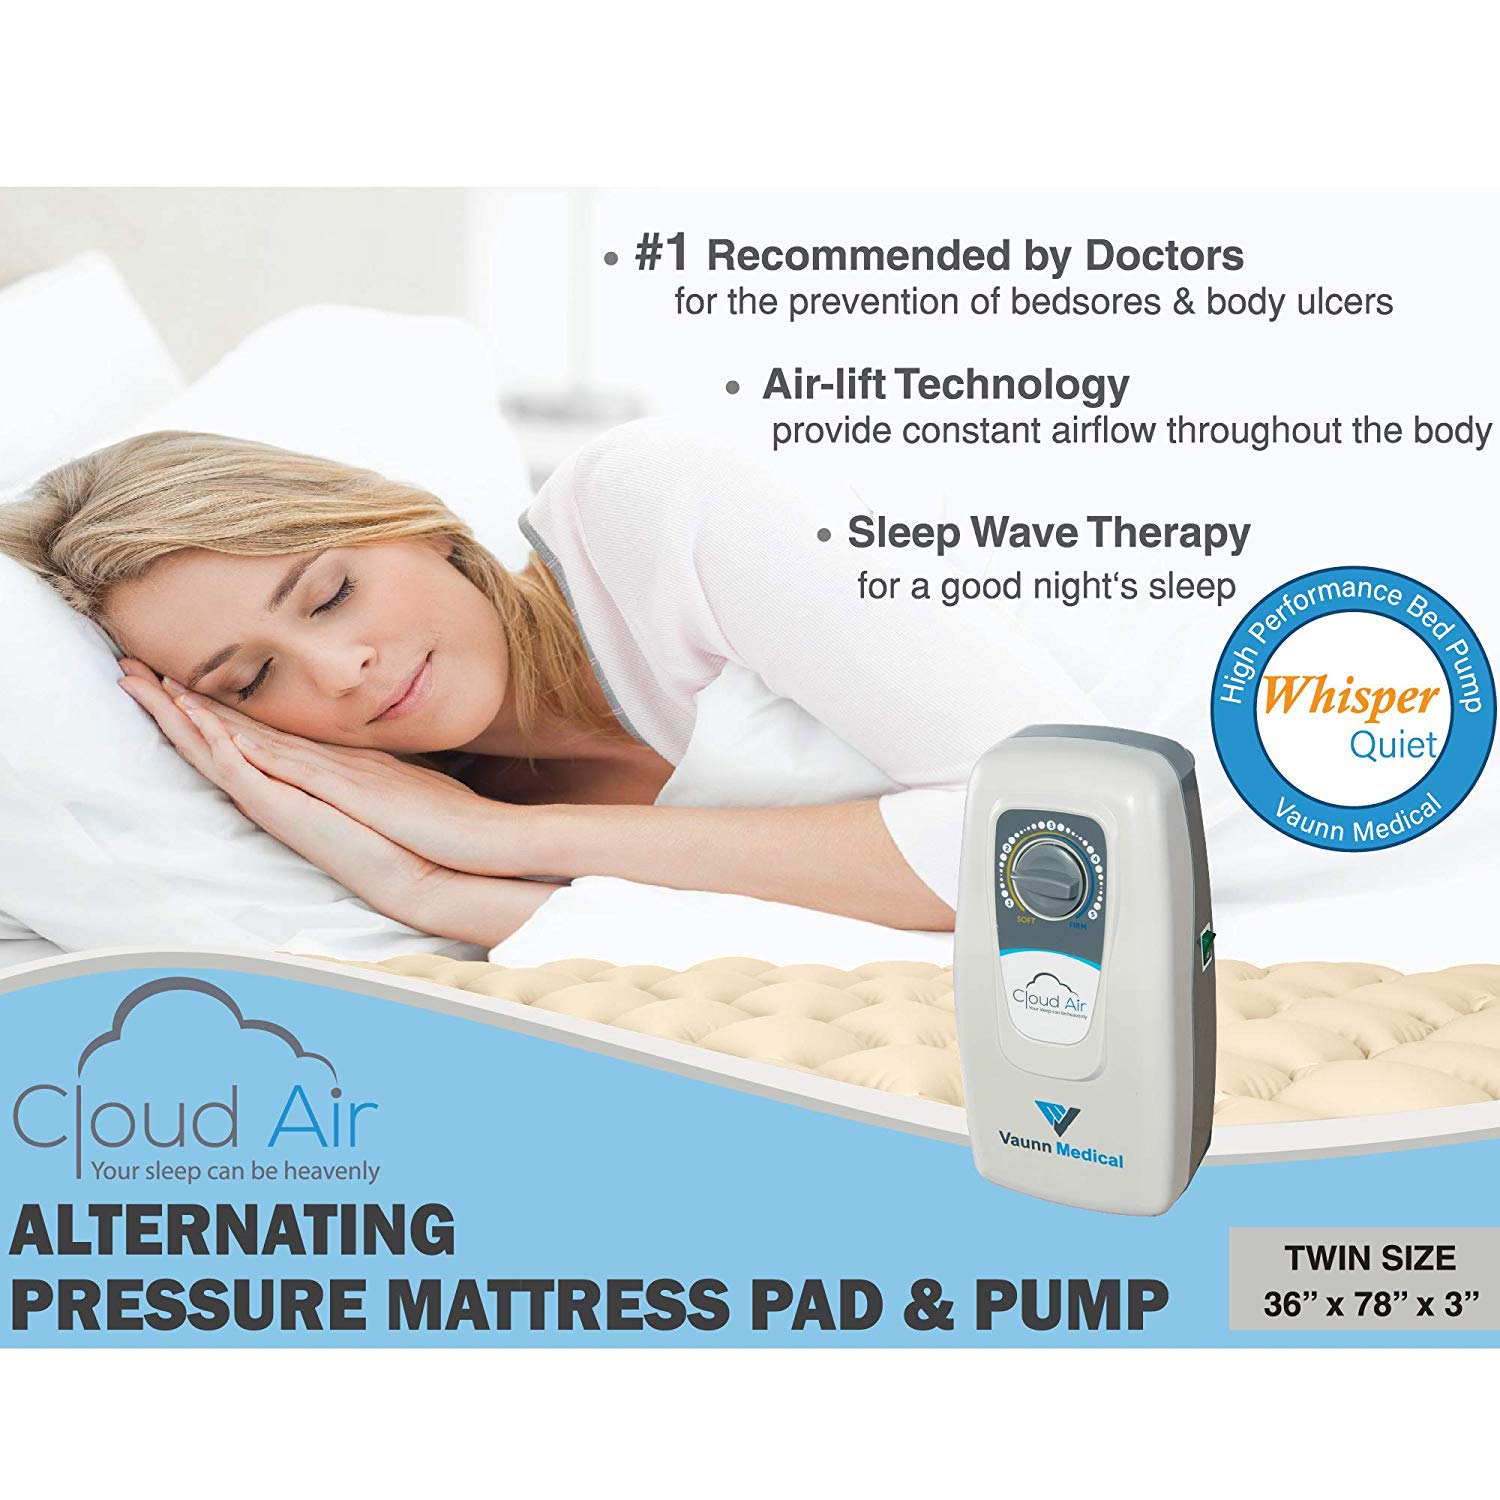 Cloud Air Whisper Quiet Alternating Air Pressure Mattress Topper with Pump (2018 Upgraded Model)